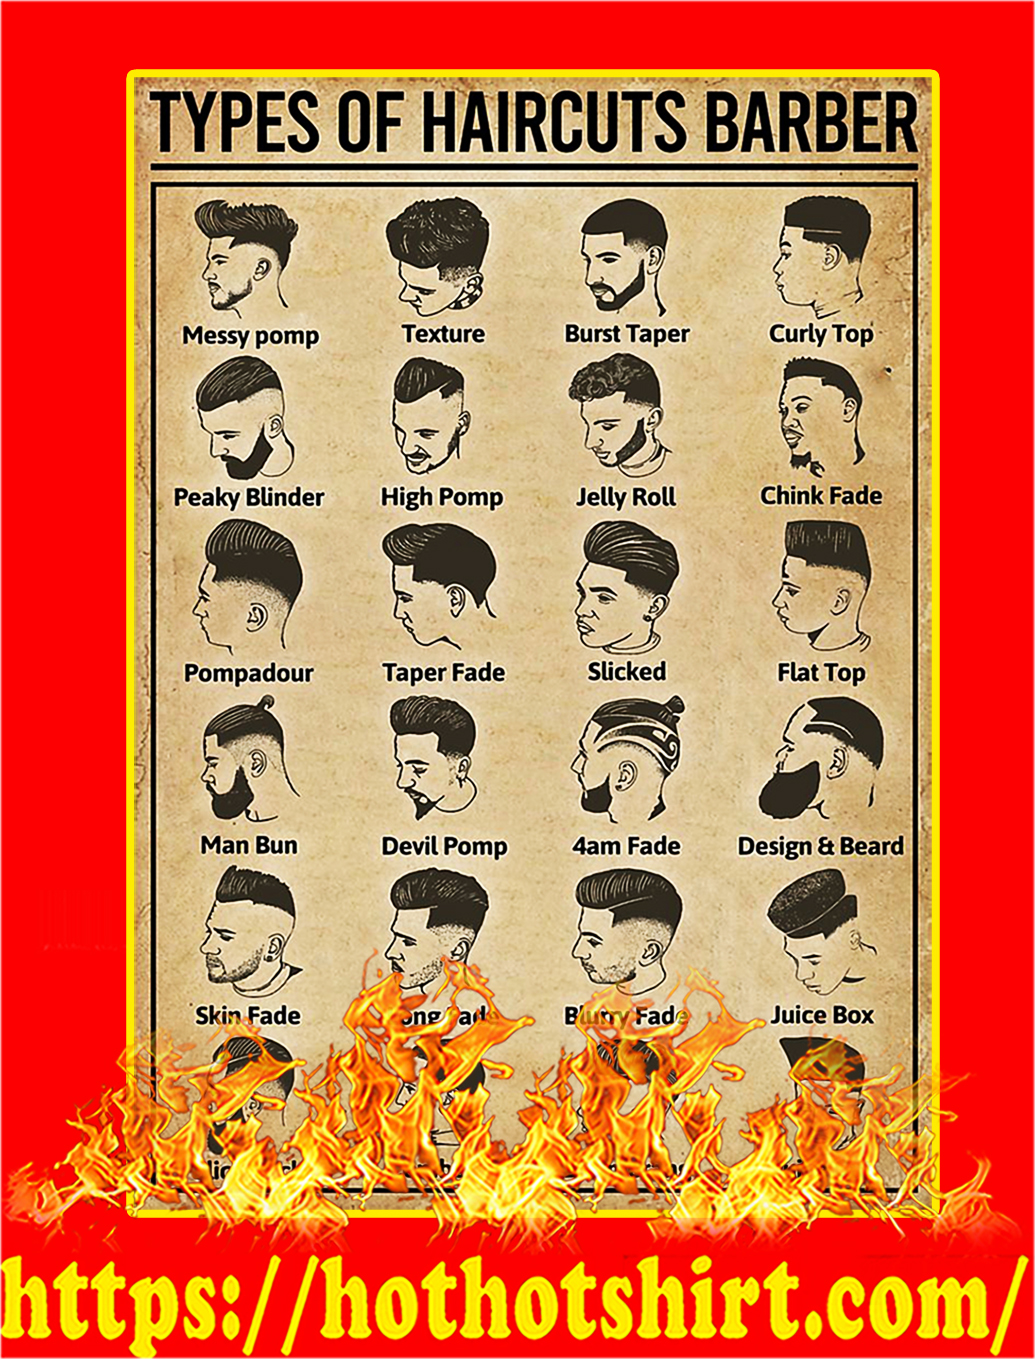 Types Of Haircuts Barber Poster - A1